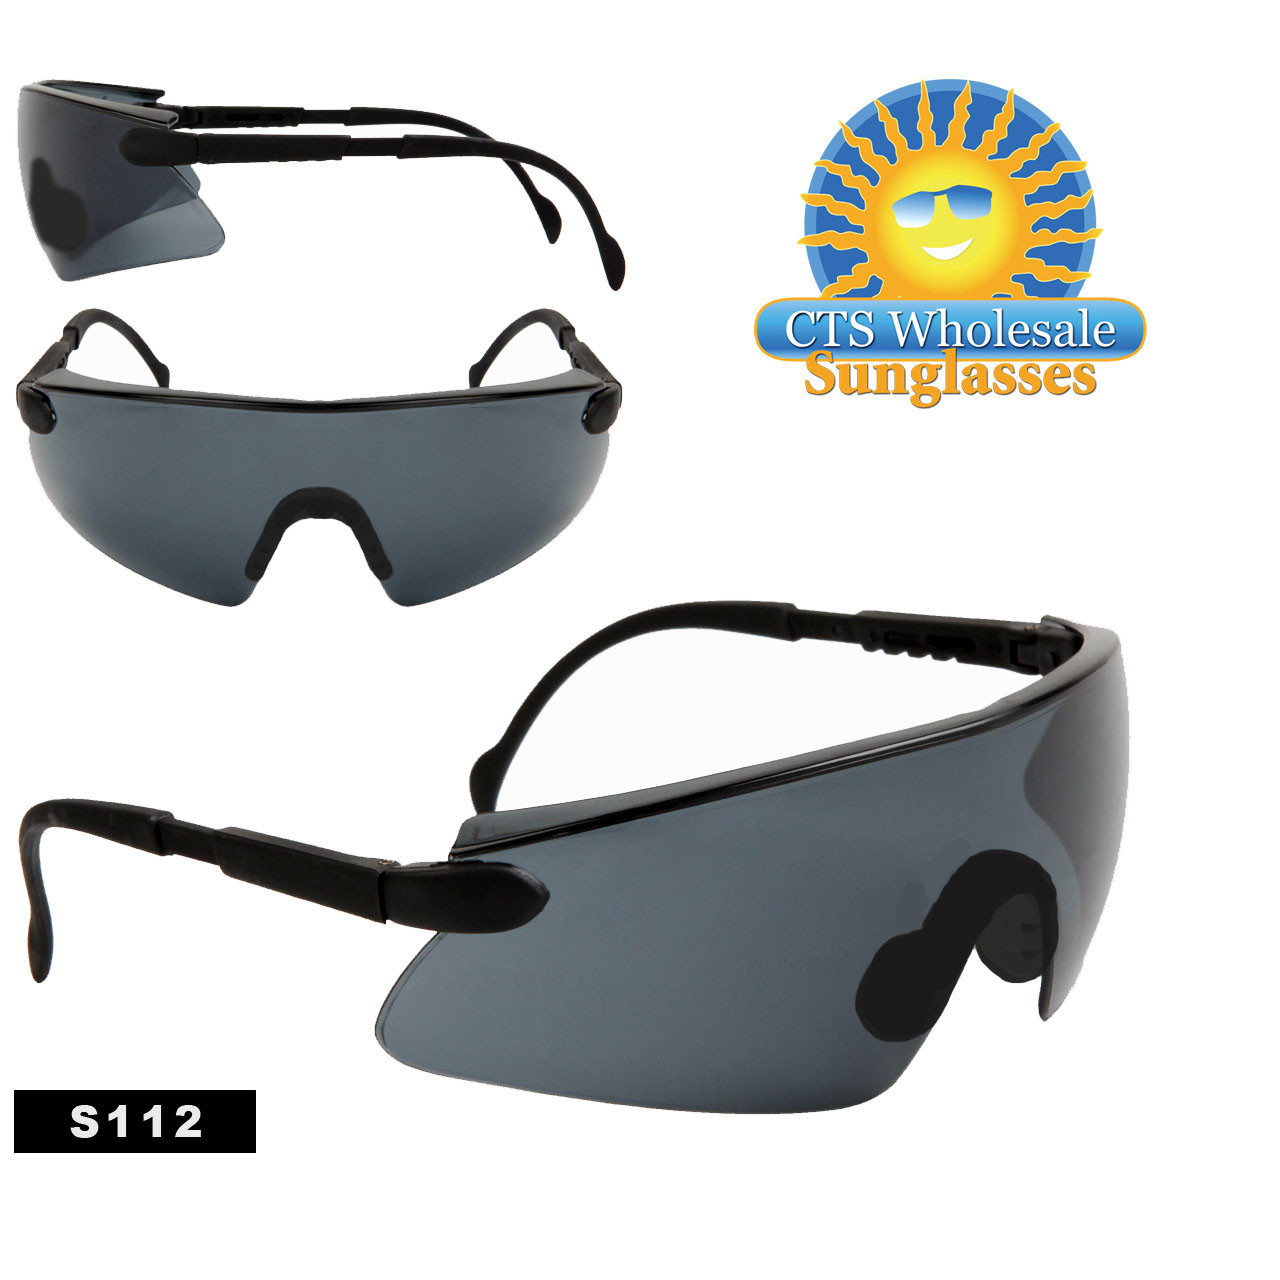 Tinted Safety Glasses with Adjustable Arms